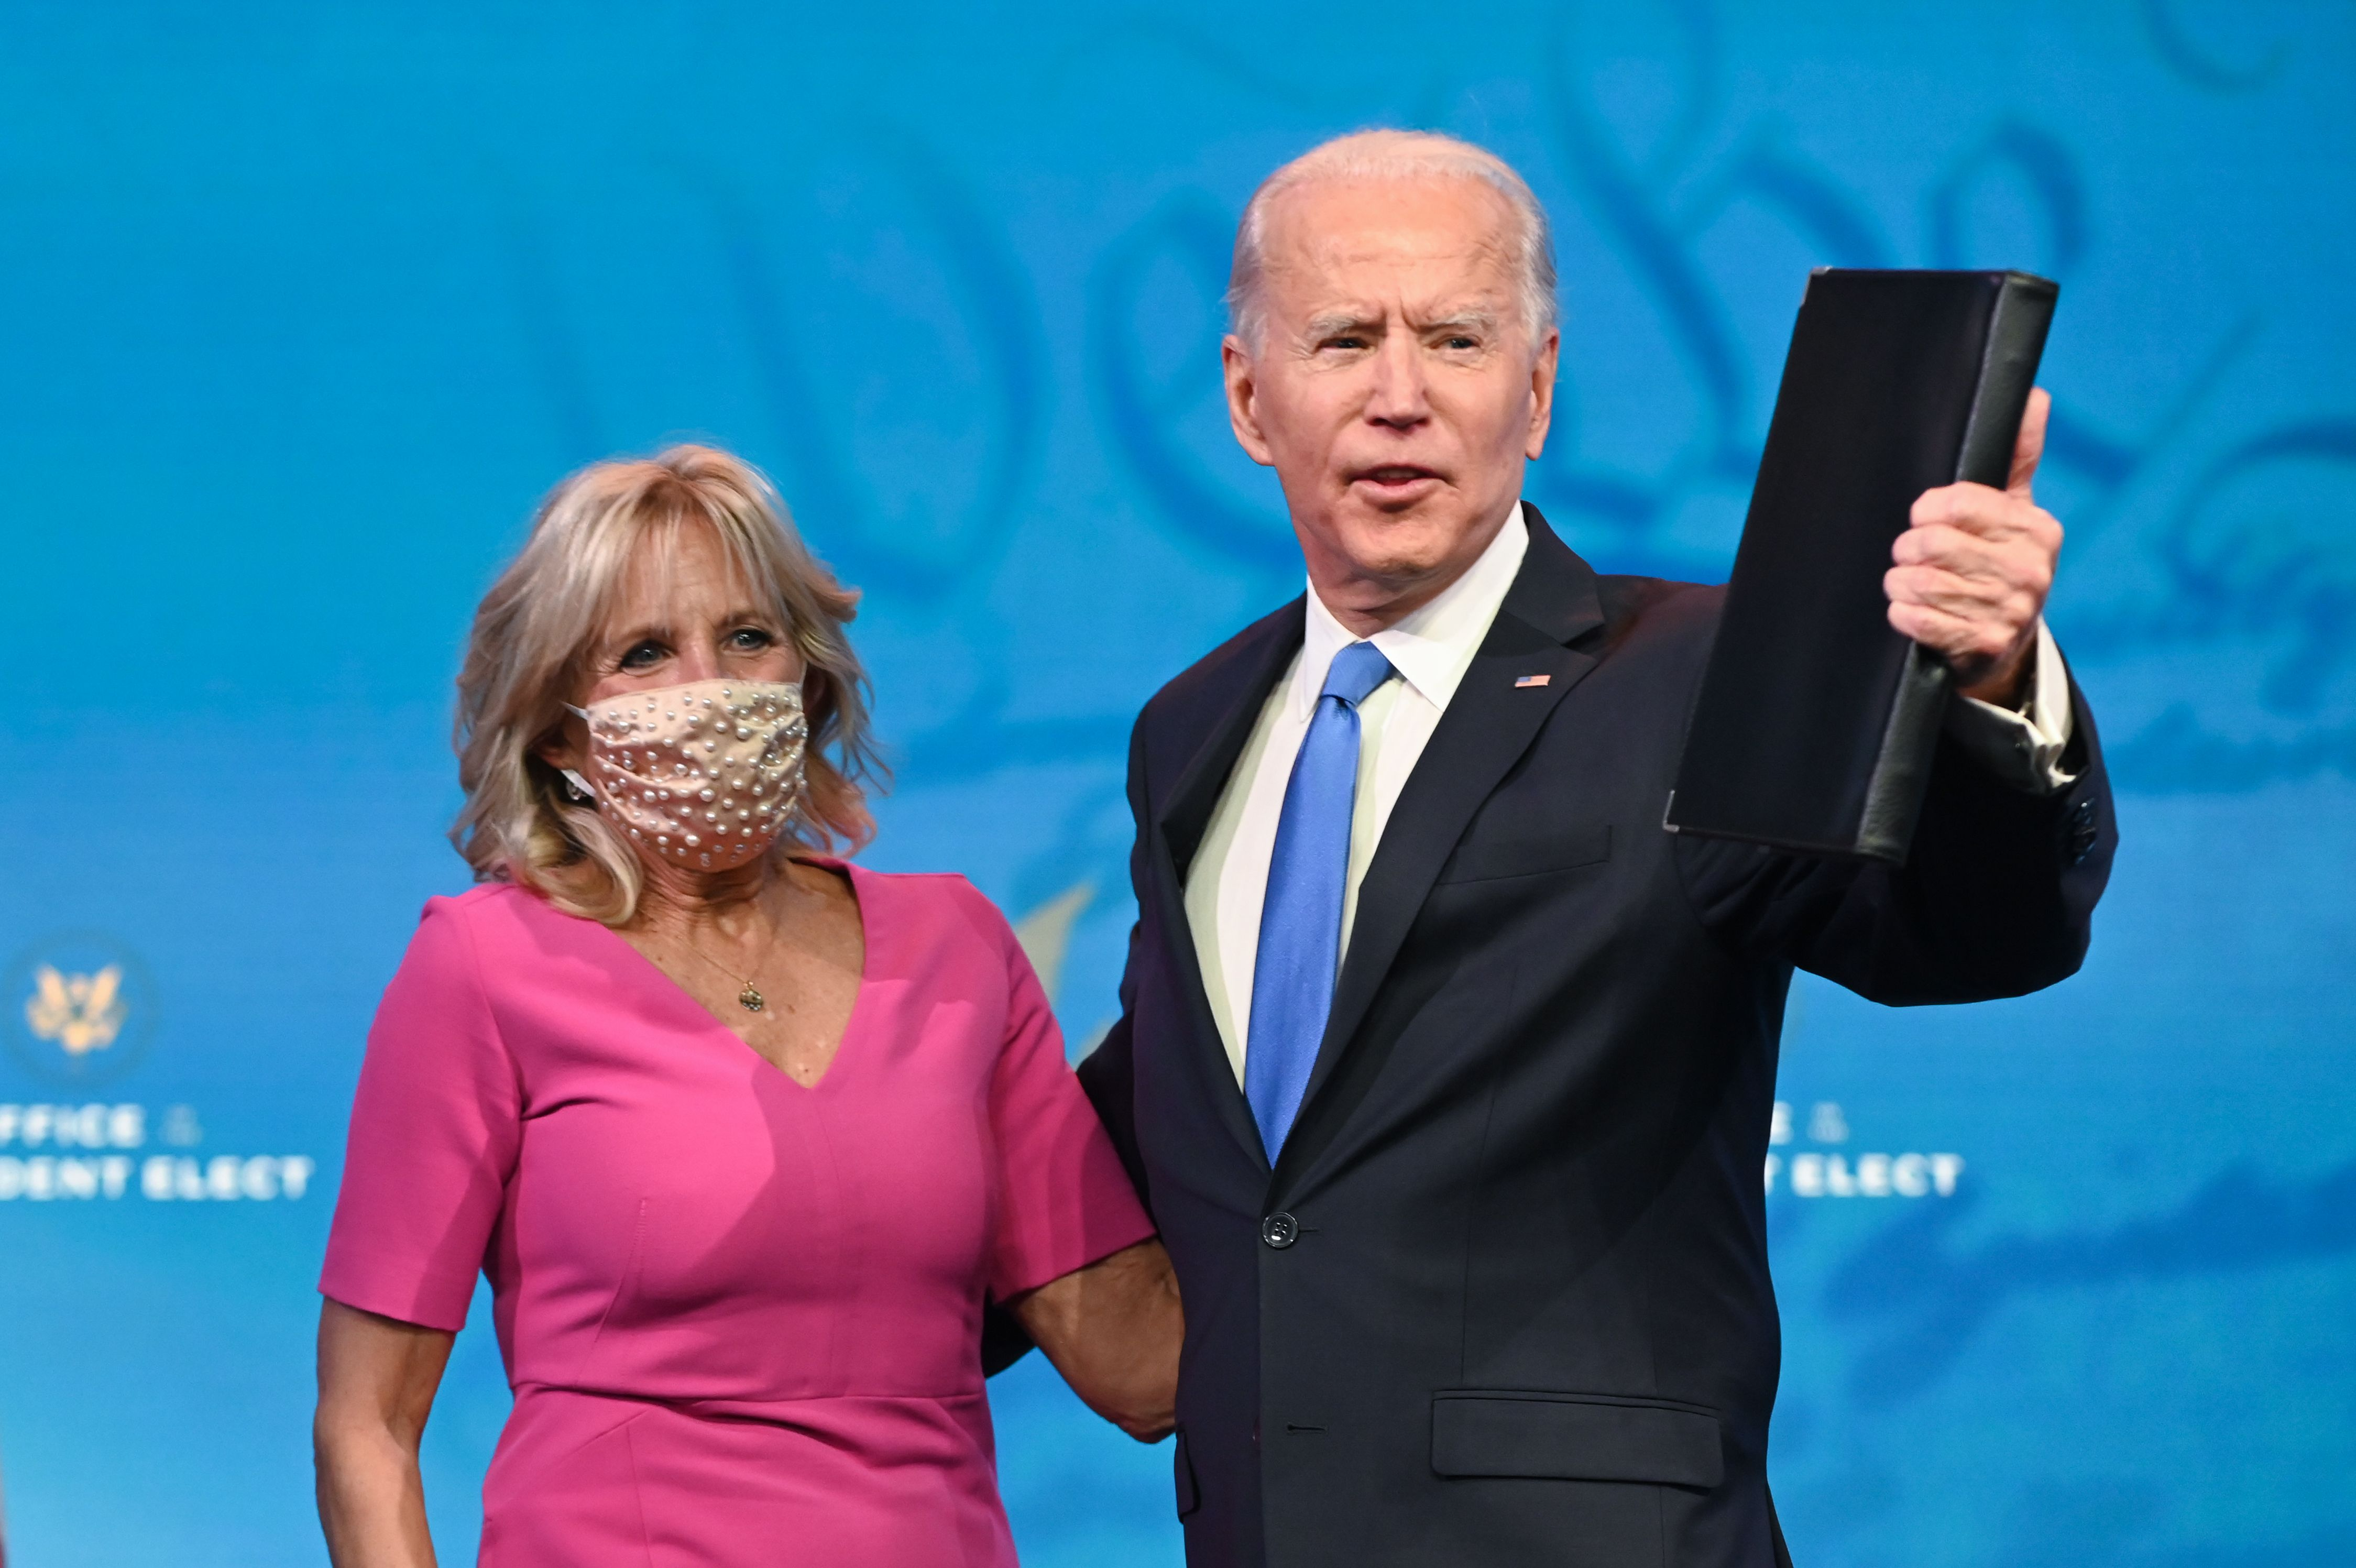 US President-elect Joe Biden arrives with wife Jill Biden to deliver remarks on the Electoral college certification at the Queen Theatre in Wilmington, Delaware on December 14, 2020. (Photo by ROBERTO SCHMIDT / AFP) (Photo by ROBERTO SCHMIDT/AFP via Getty Images)